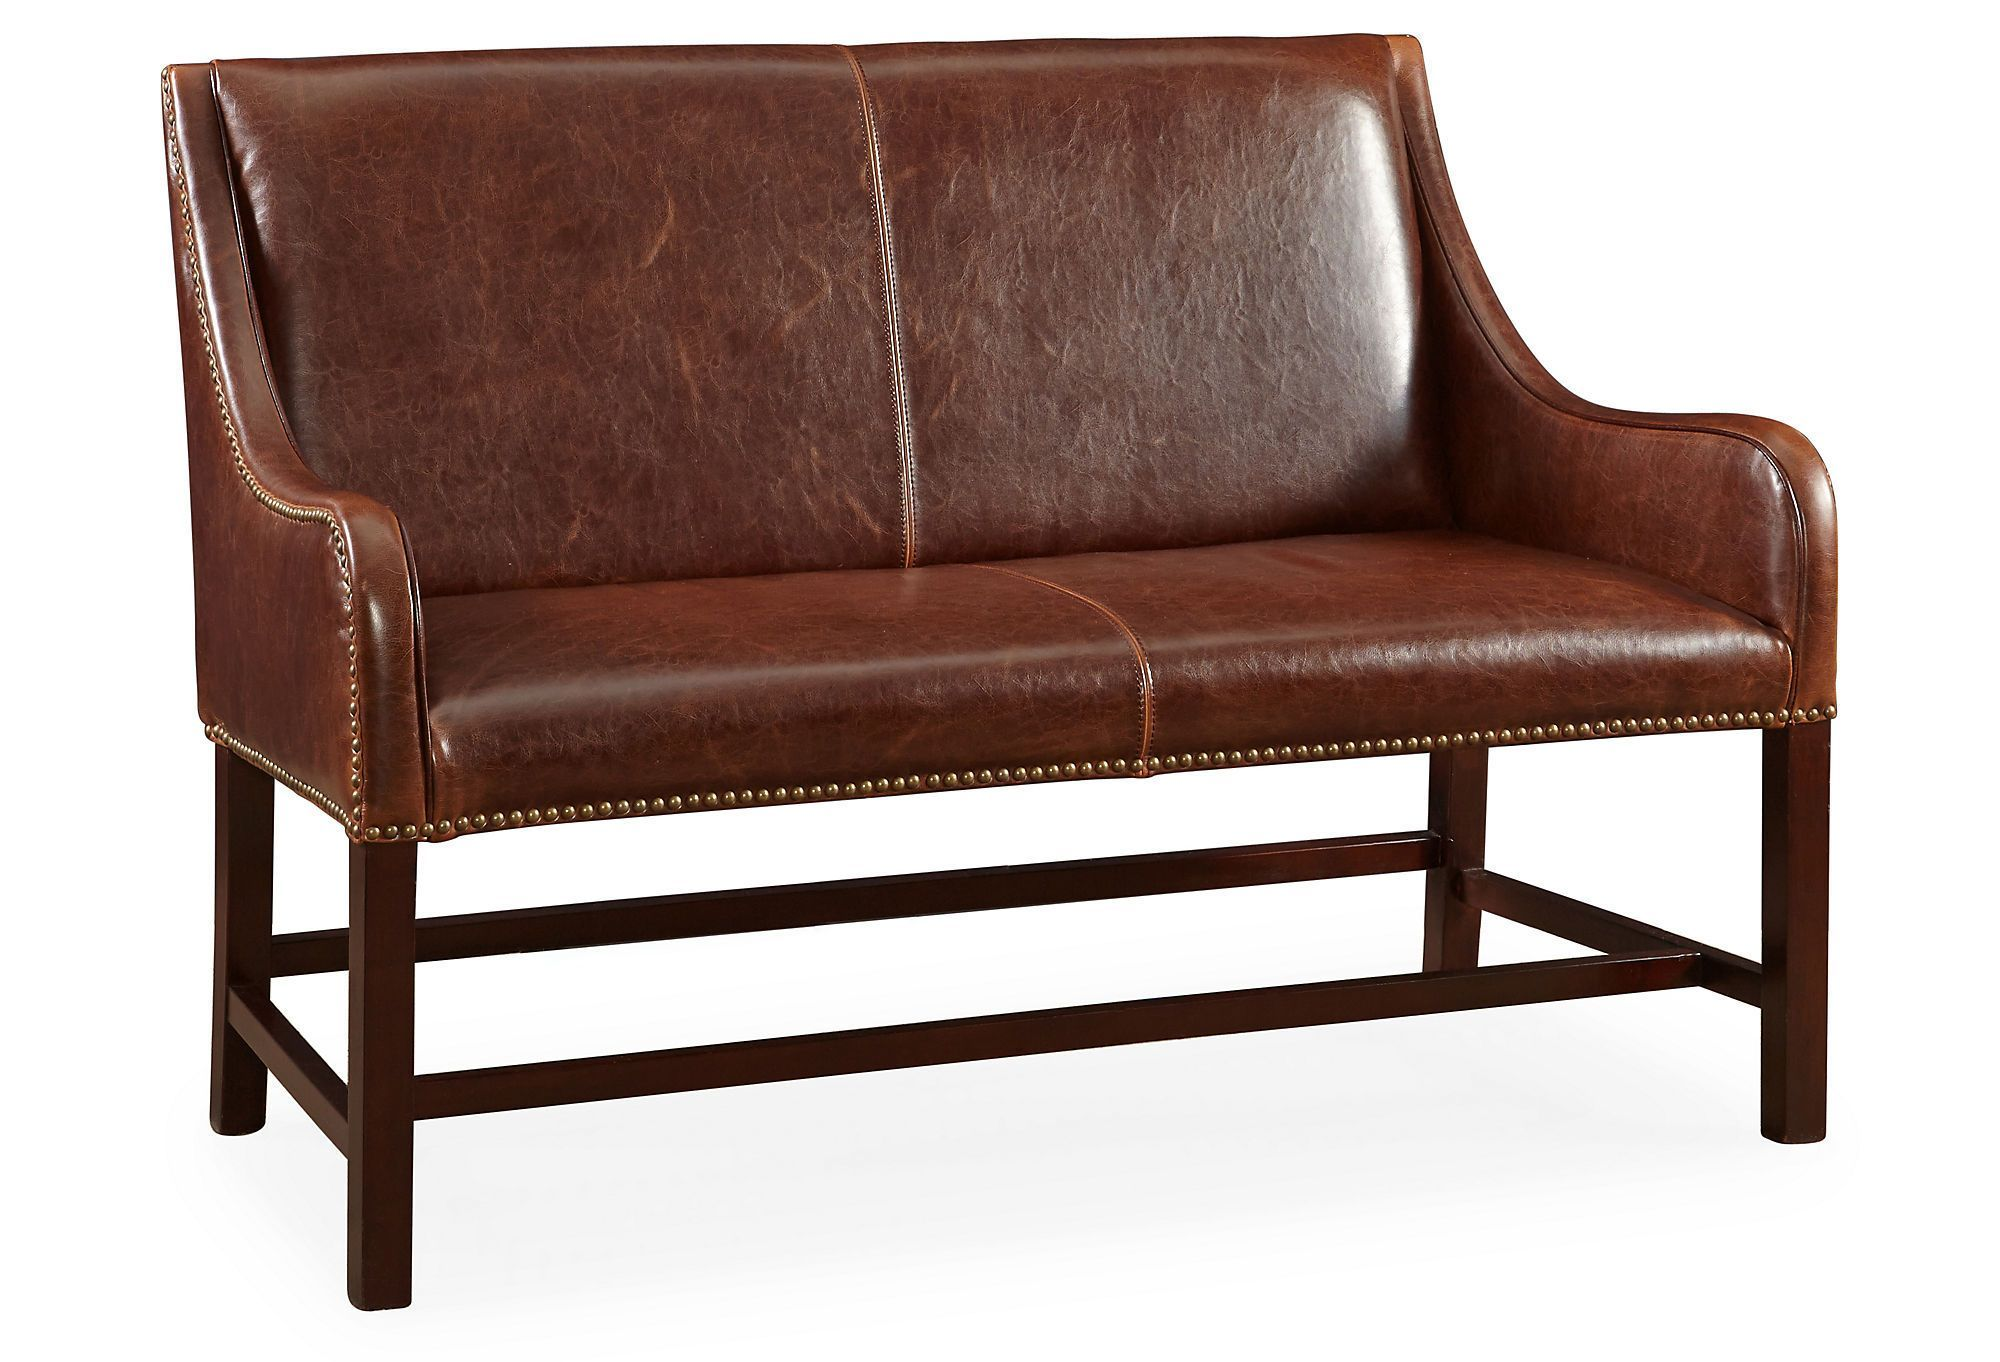 "Machester 46"" Leather Settee Saddle Love the Look"